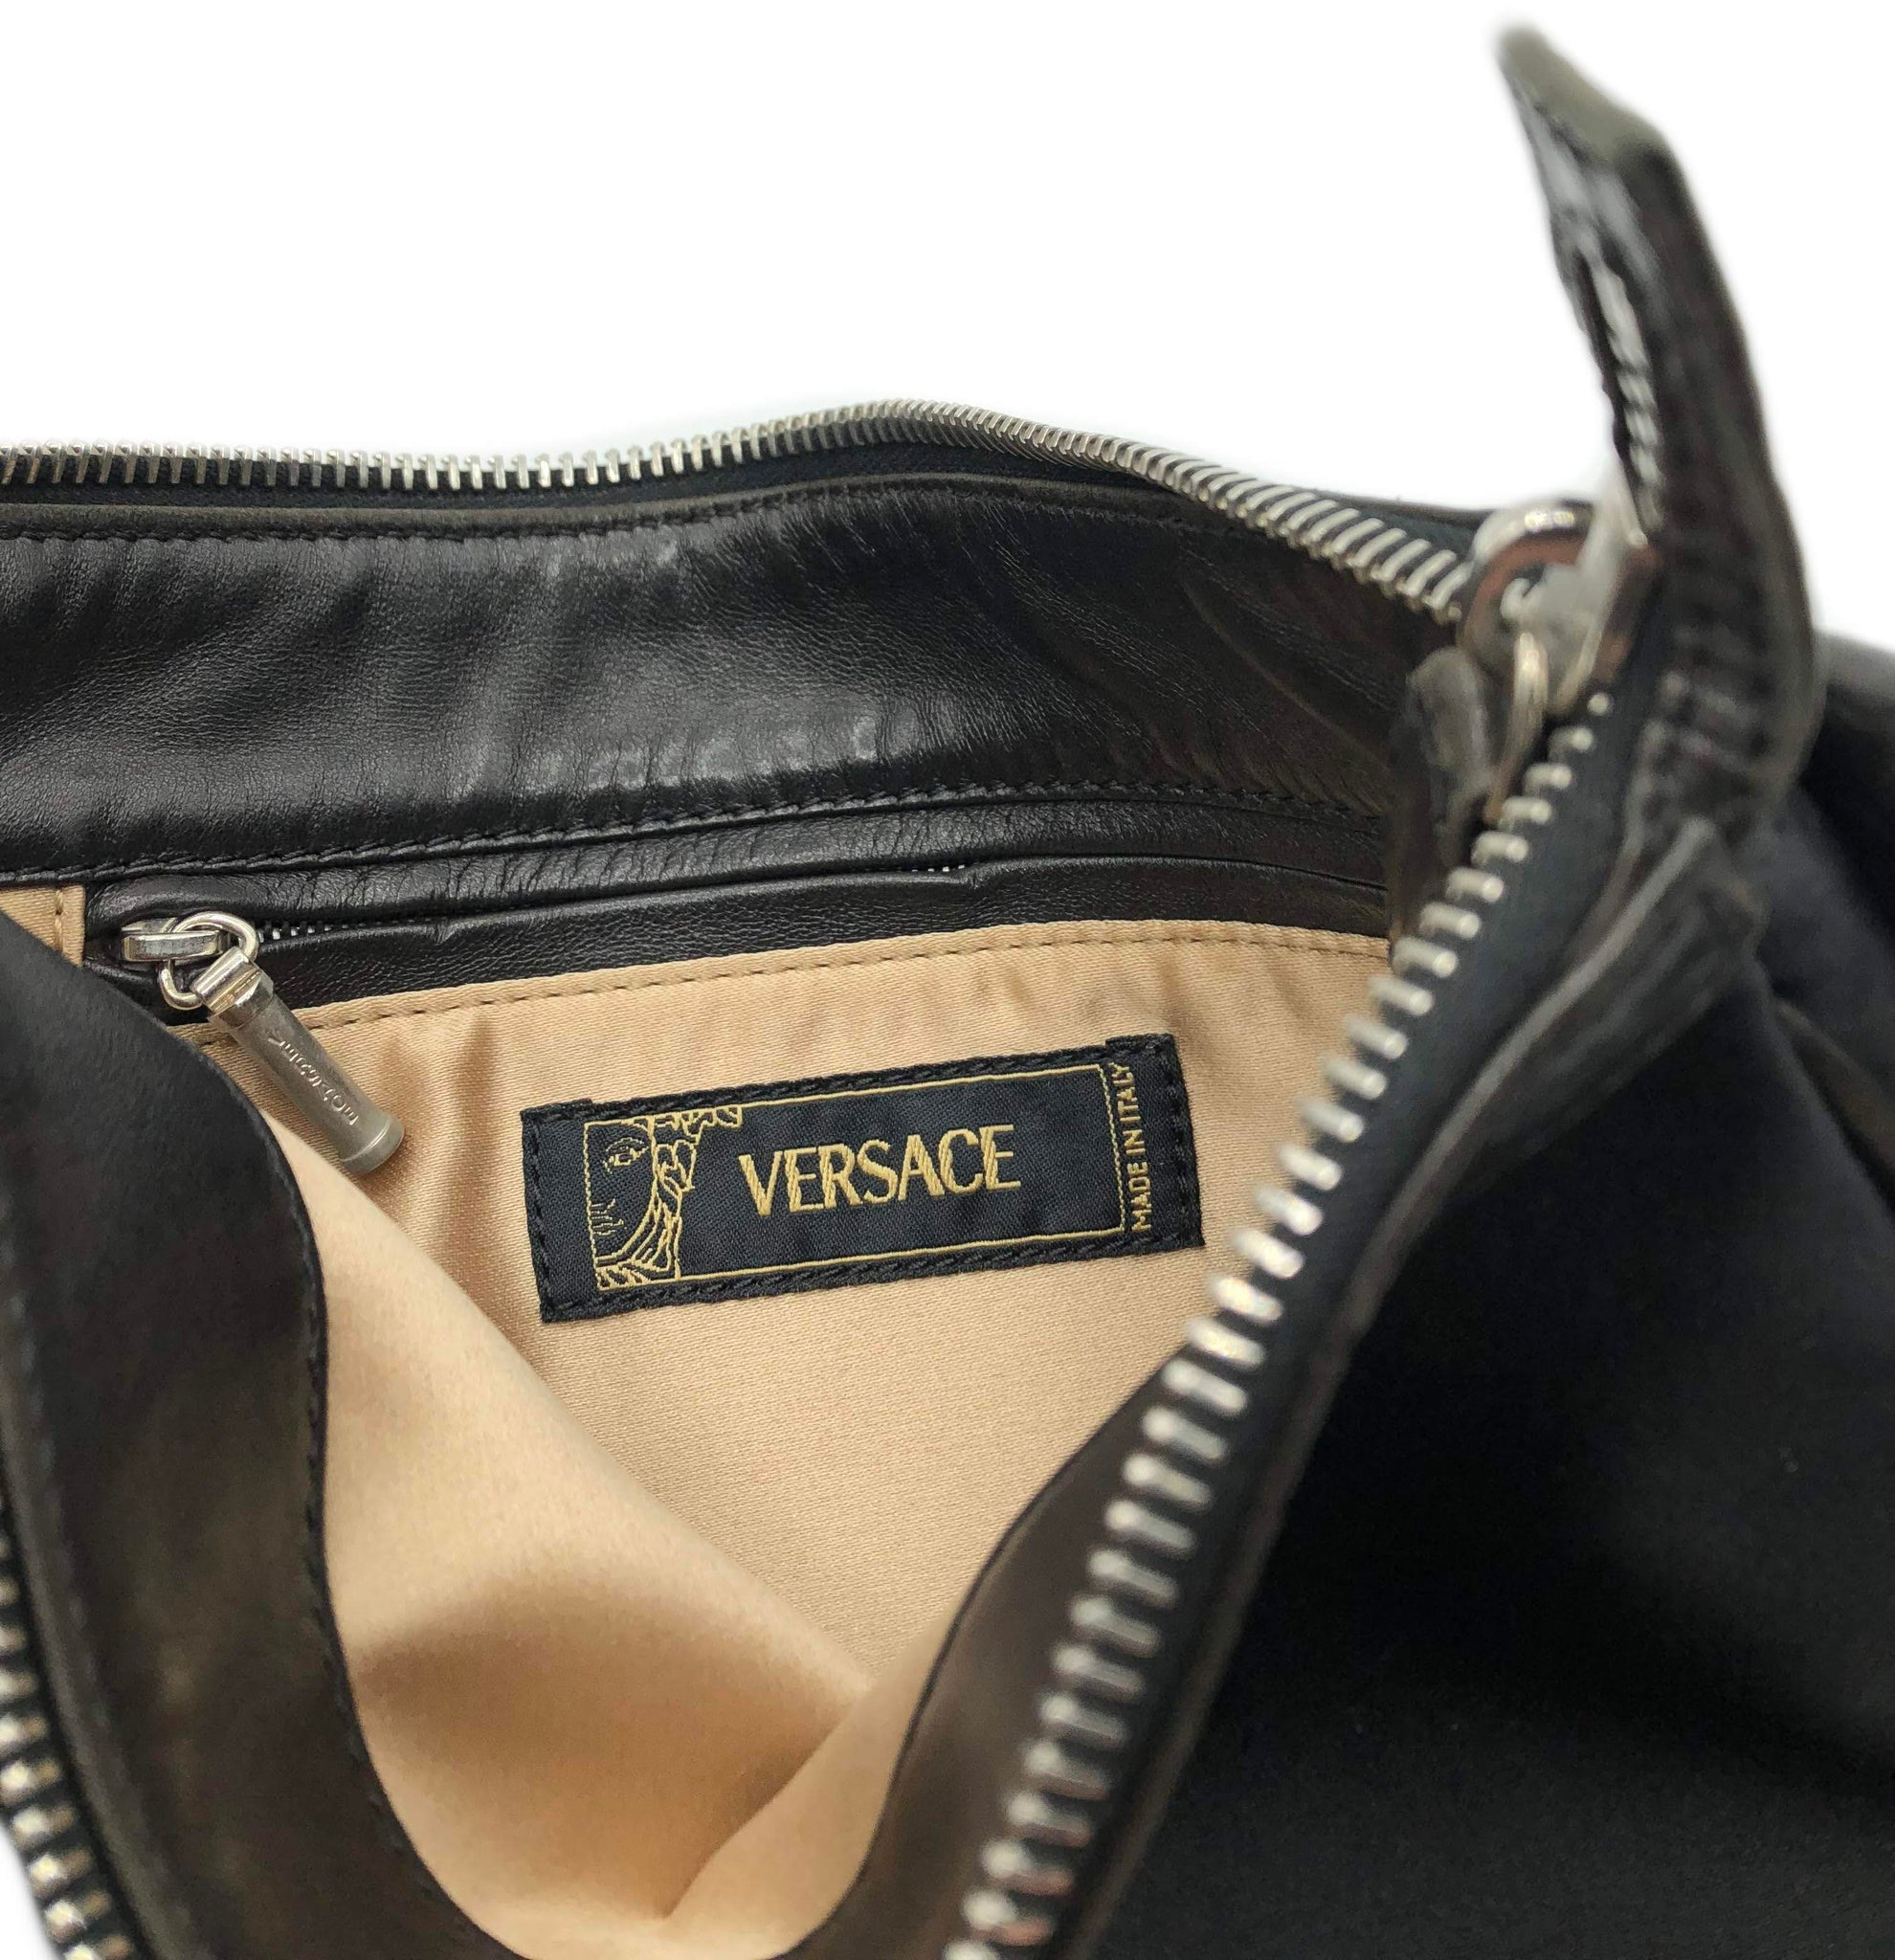 Versace 90s Black Nylon Pochette 4 of 4